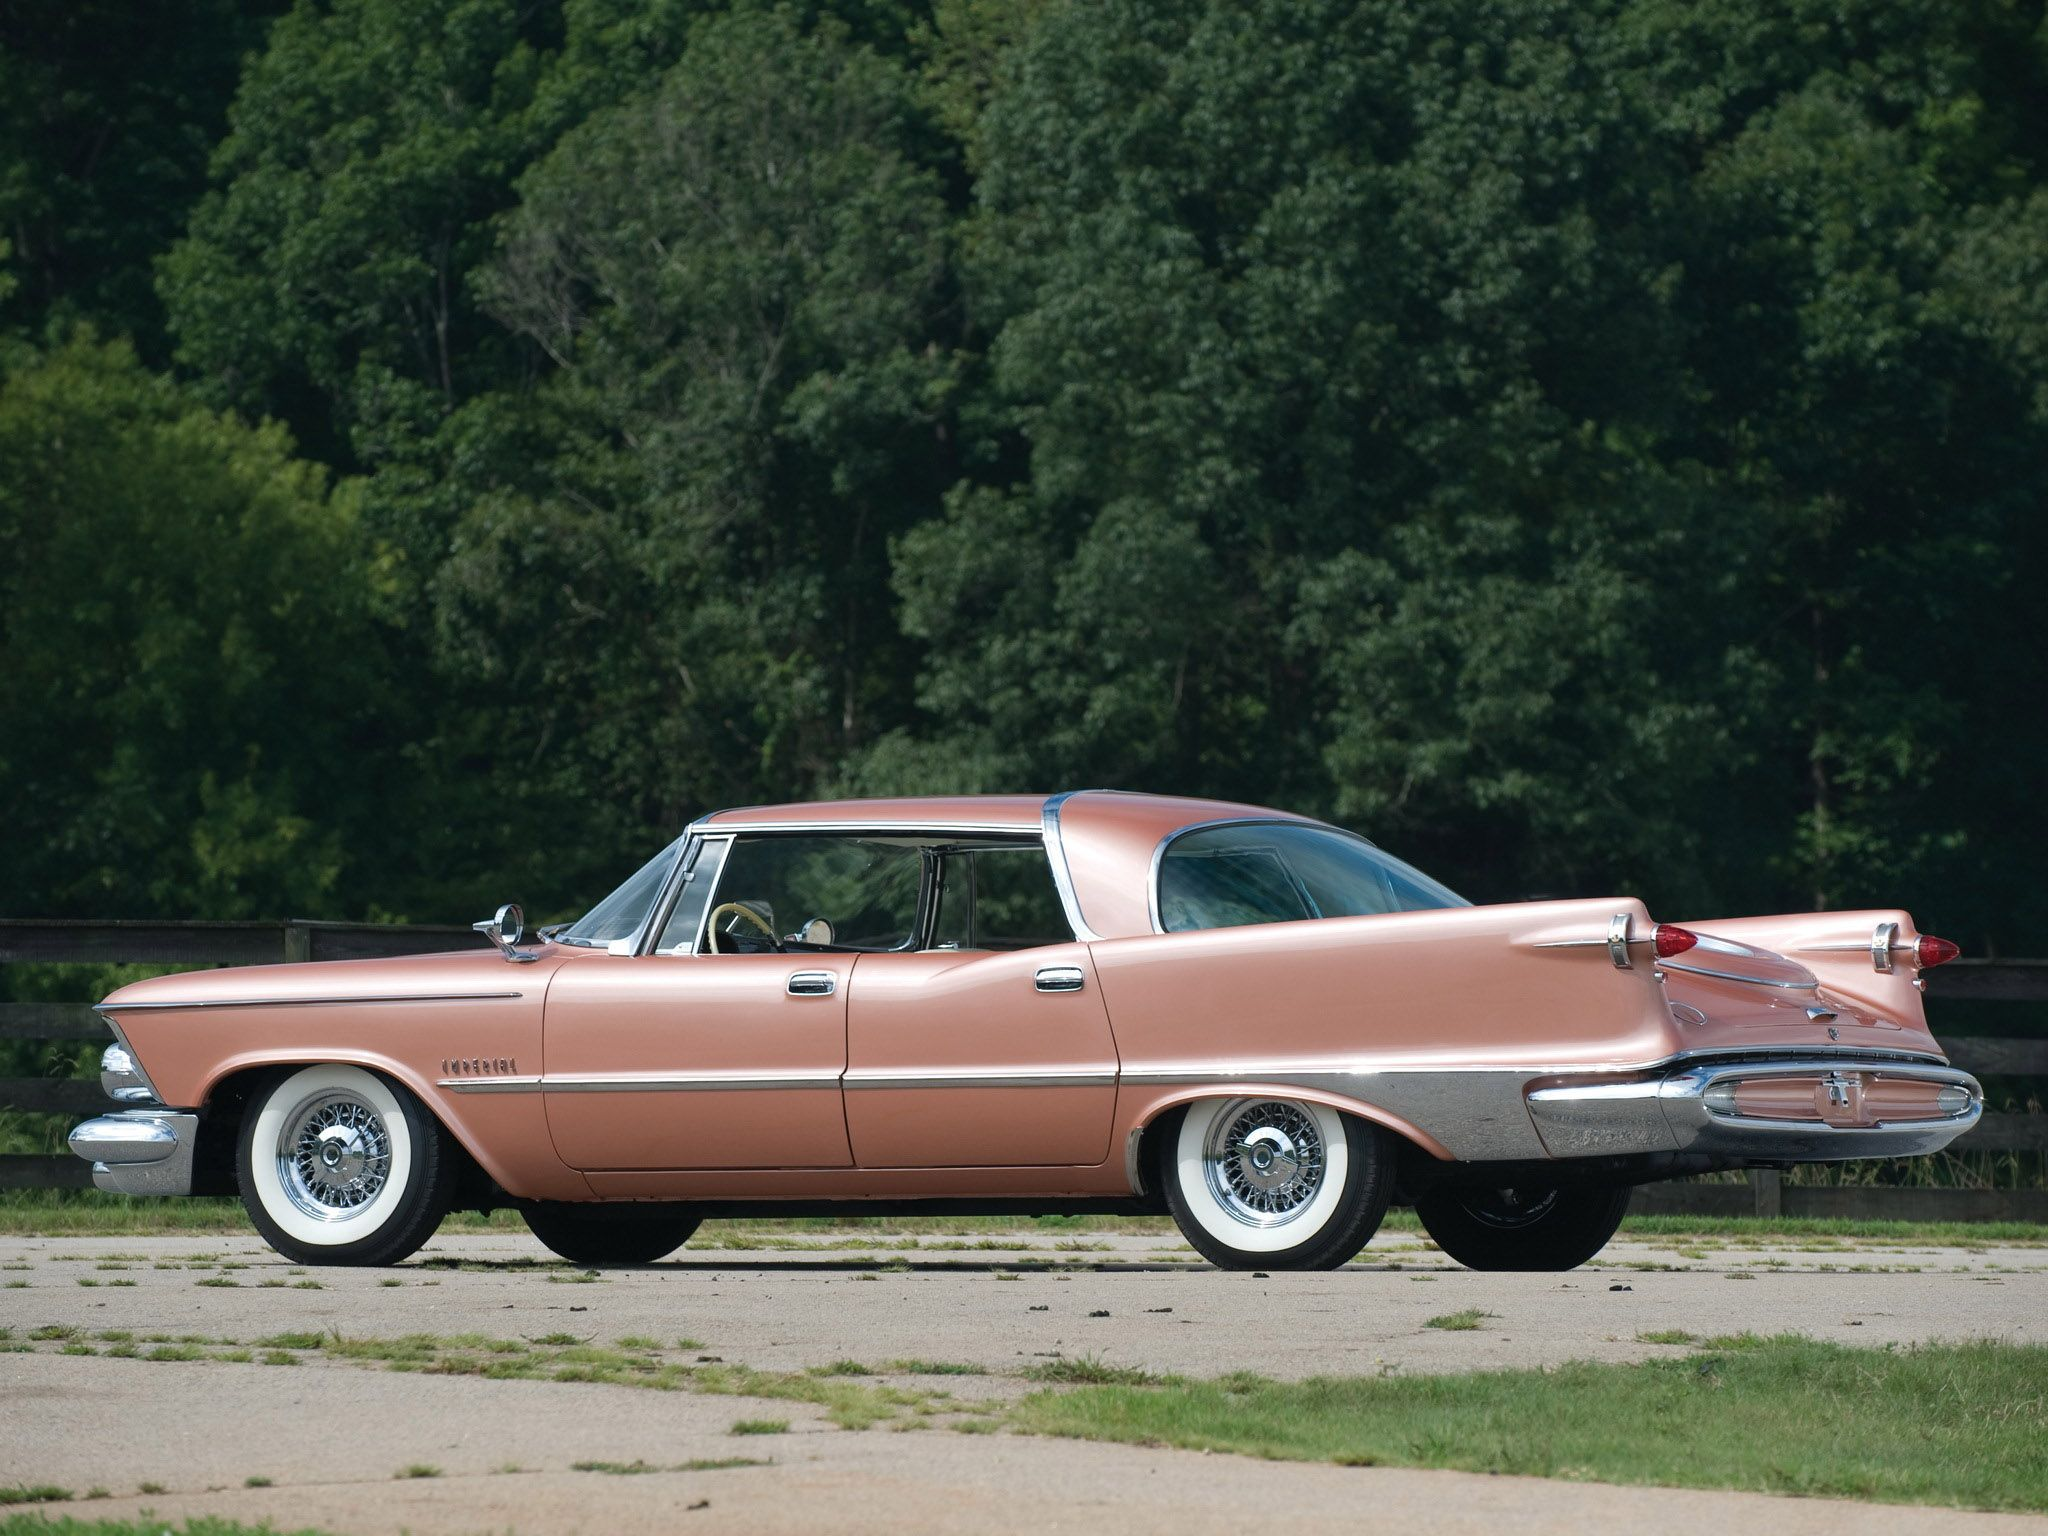 1959 Chrysler Imperial Crown Southampton | Chrysler Corp ...